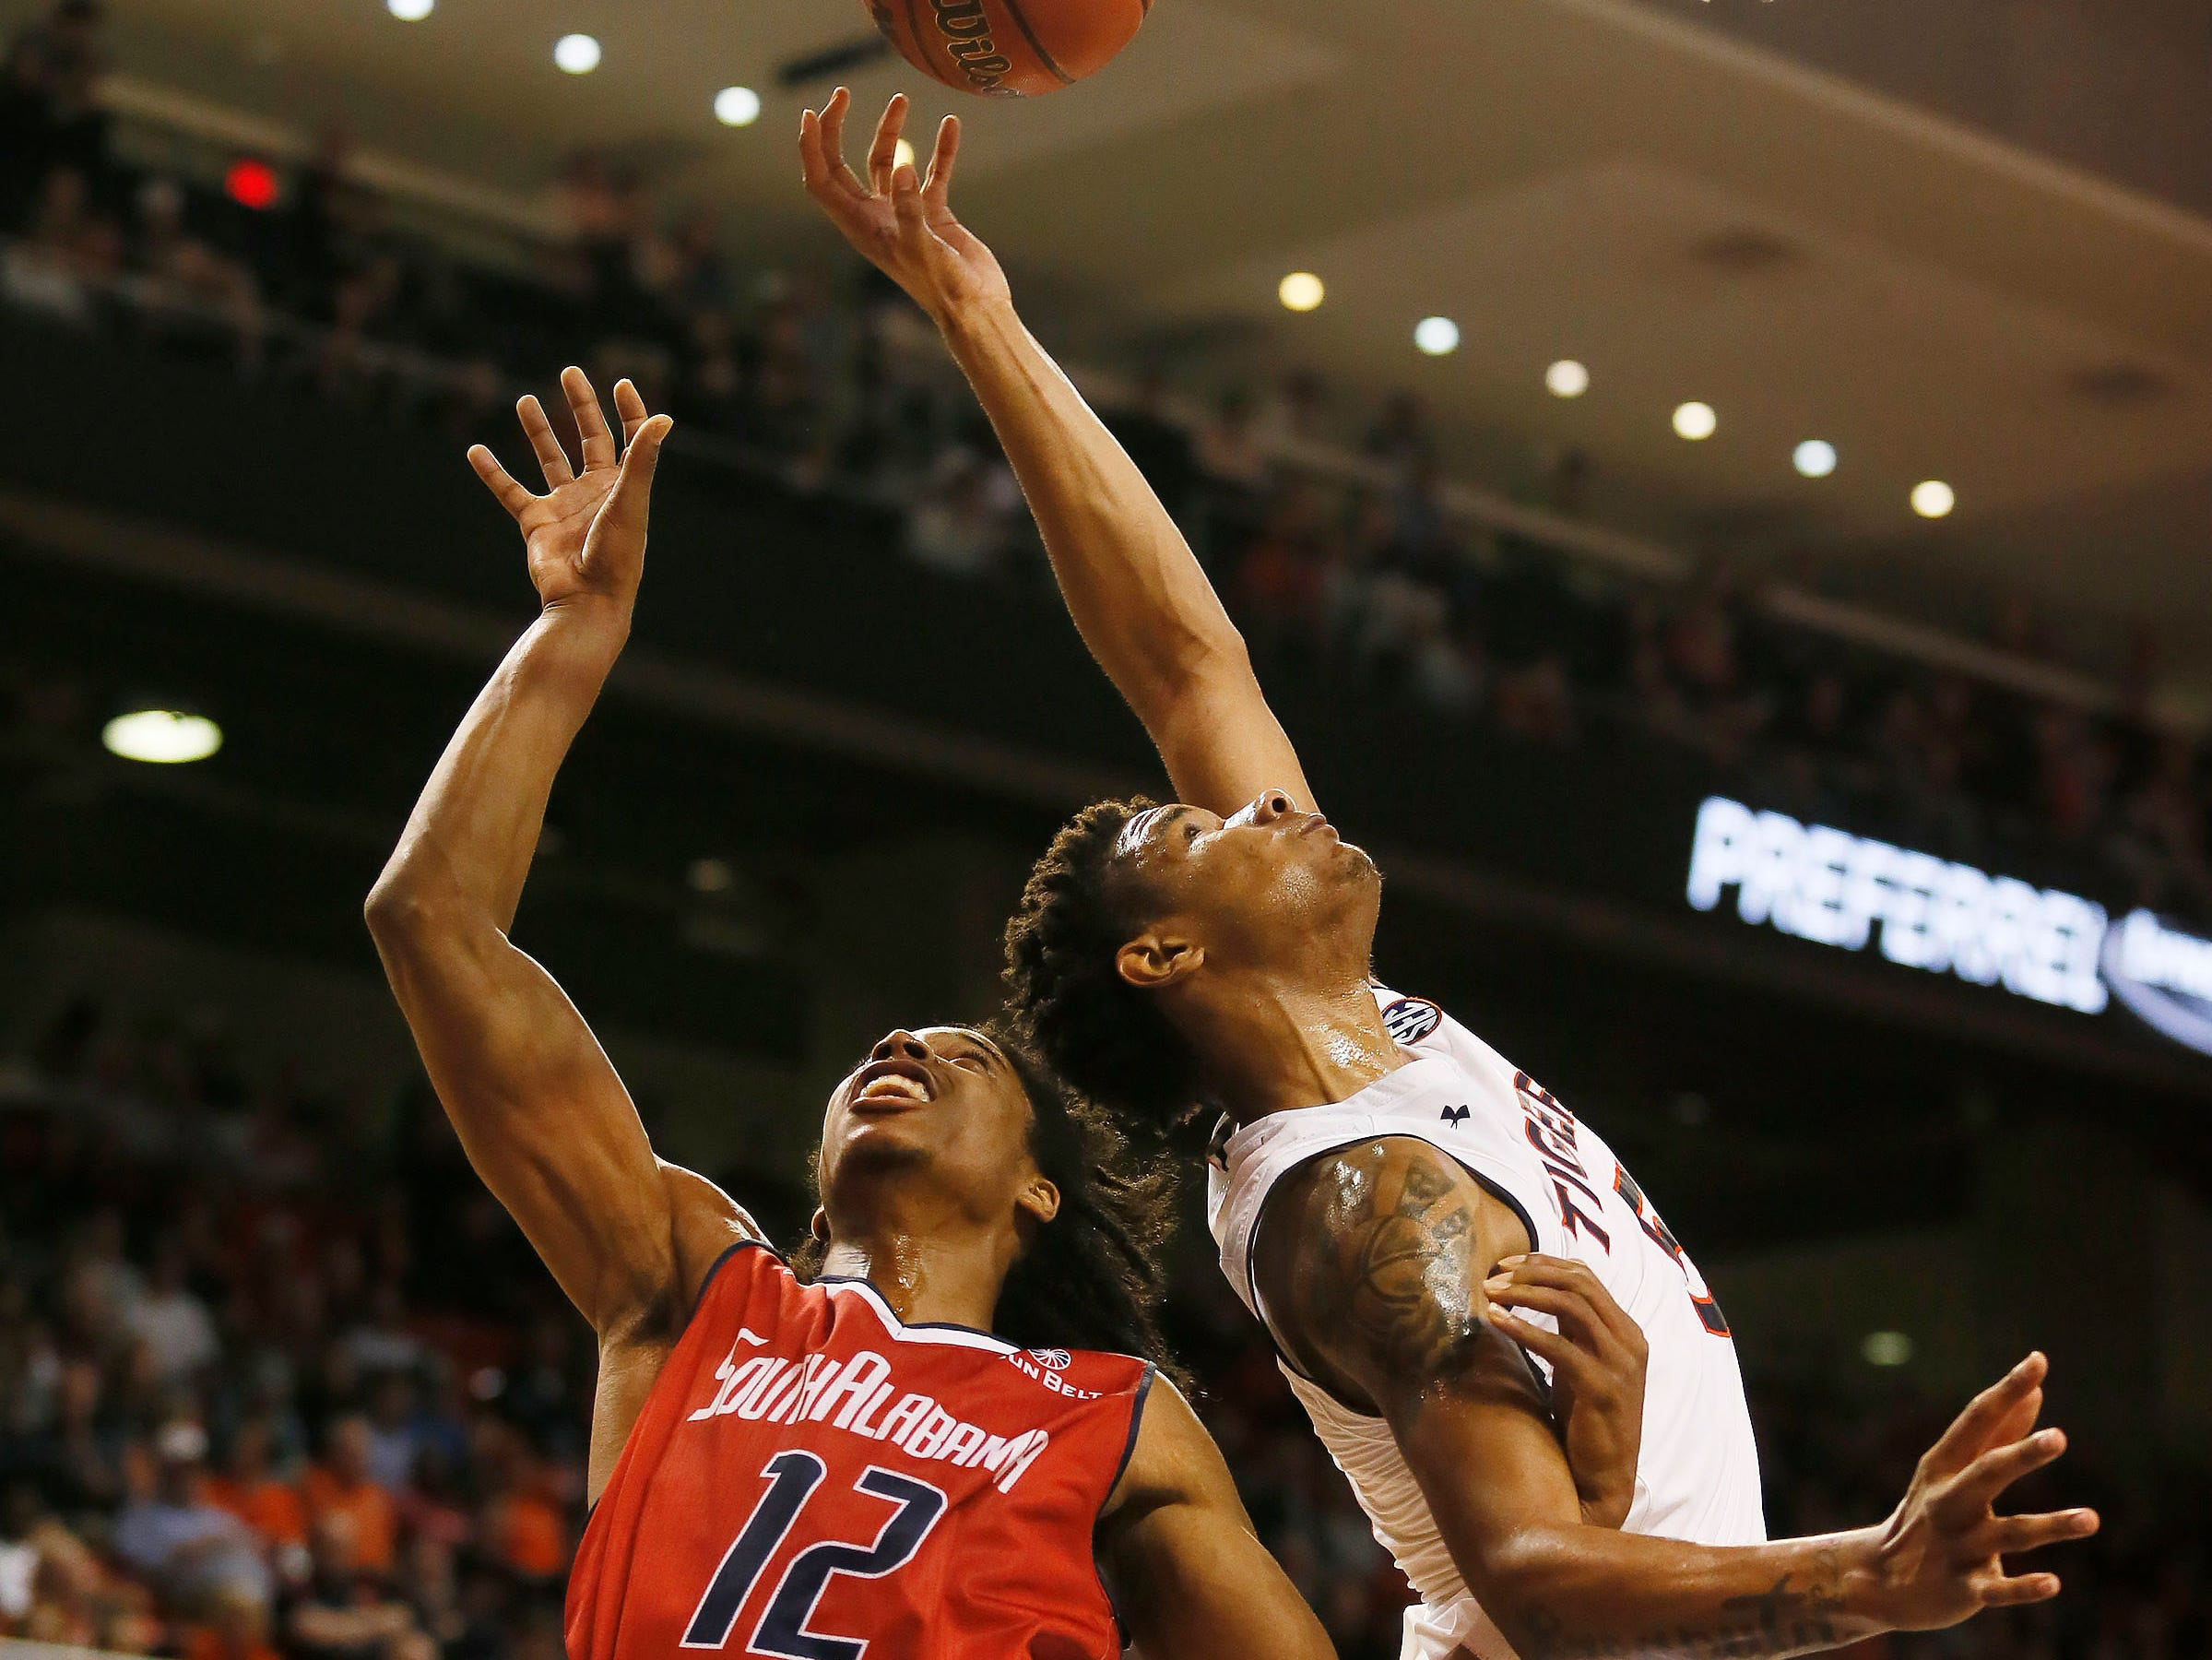 Nov 6, 2018; Auburn, AL, USA; South Alabama Jaguars forward RJ Kelly (12) battles for a rebound with Auburn Tigers guard Samir Doughty (10) during the first half at Auburn Arena. Mandatory Credit: John Reed-USA TODAY Sports